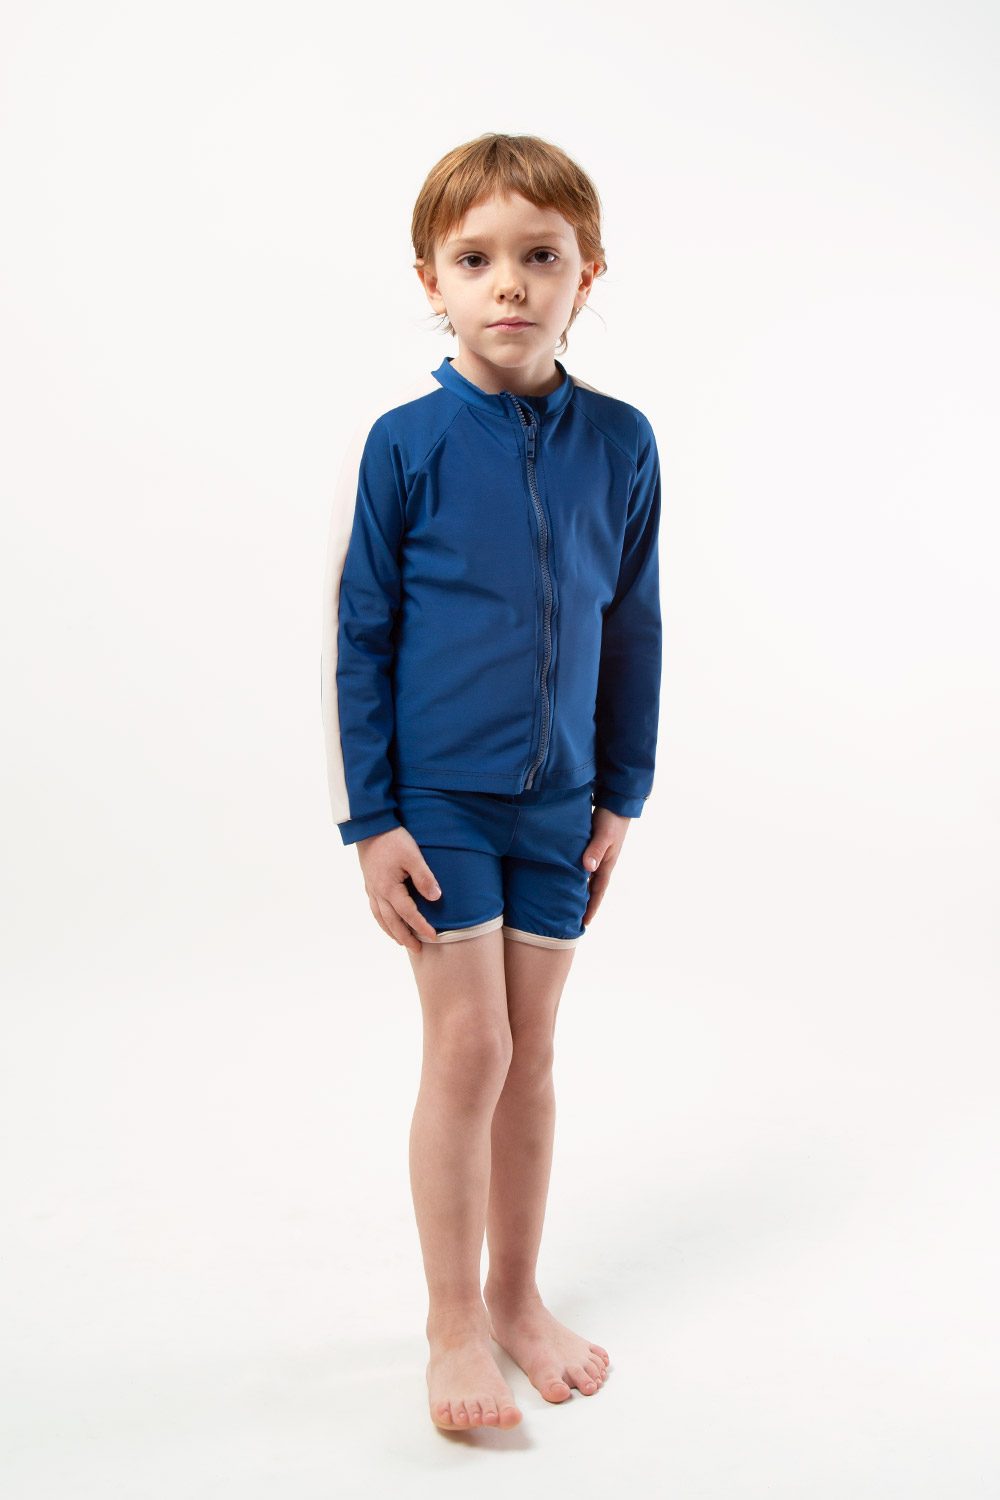 eco friendly rash guard blue. Front zipper, boy view